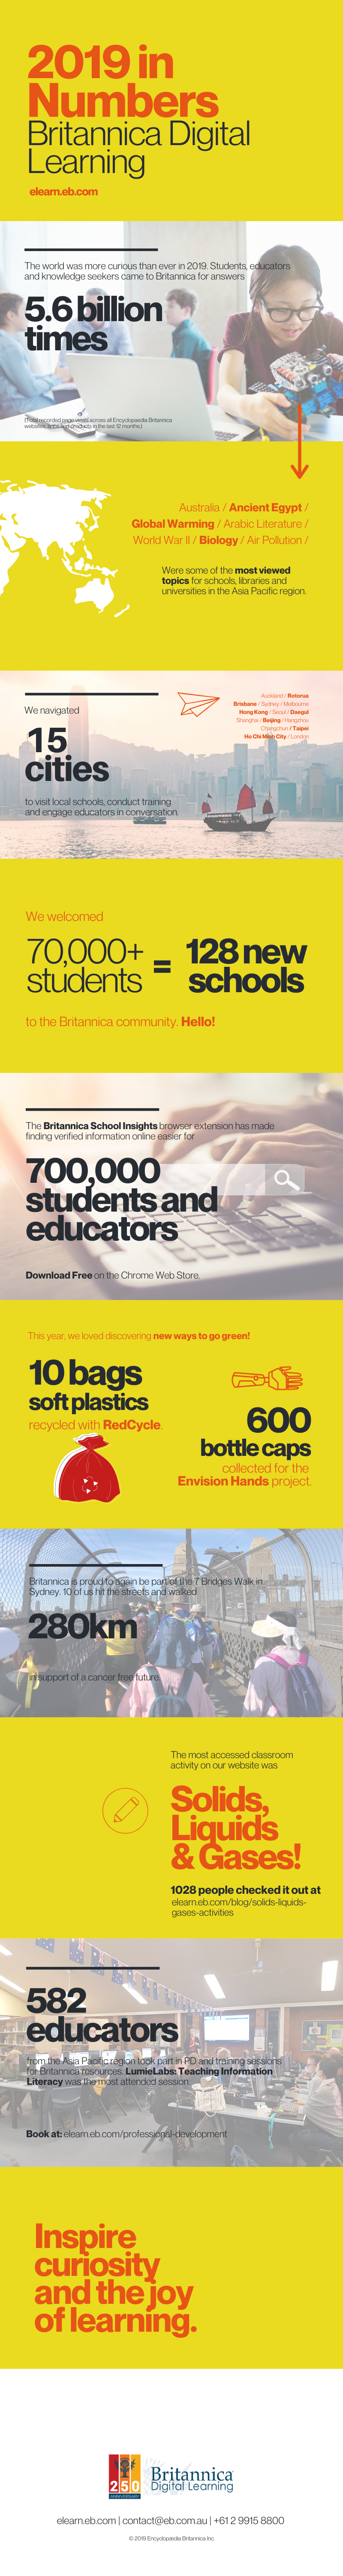 Britannica Digital Learning Year in Numbers 2019